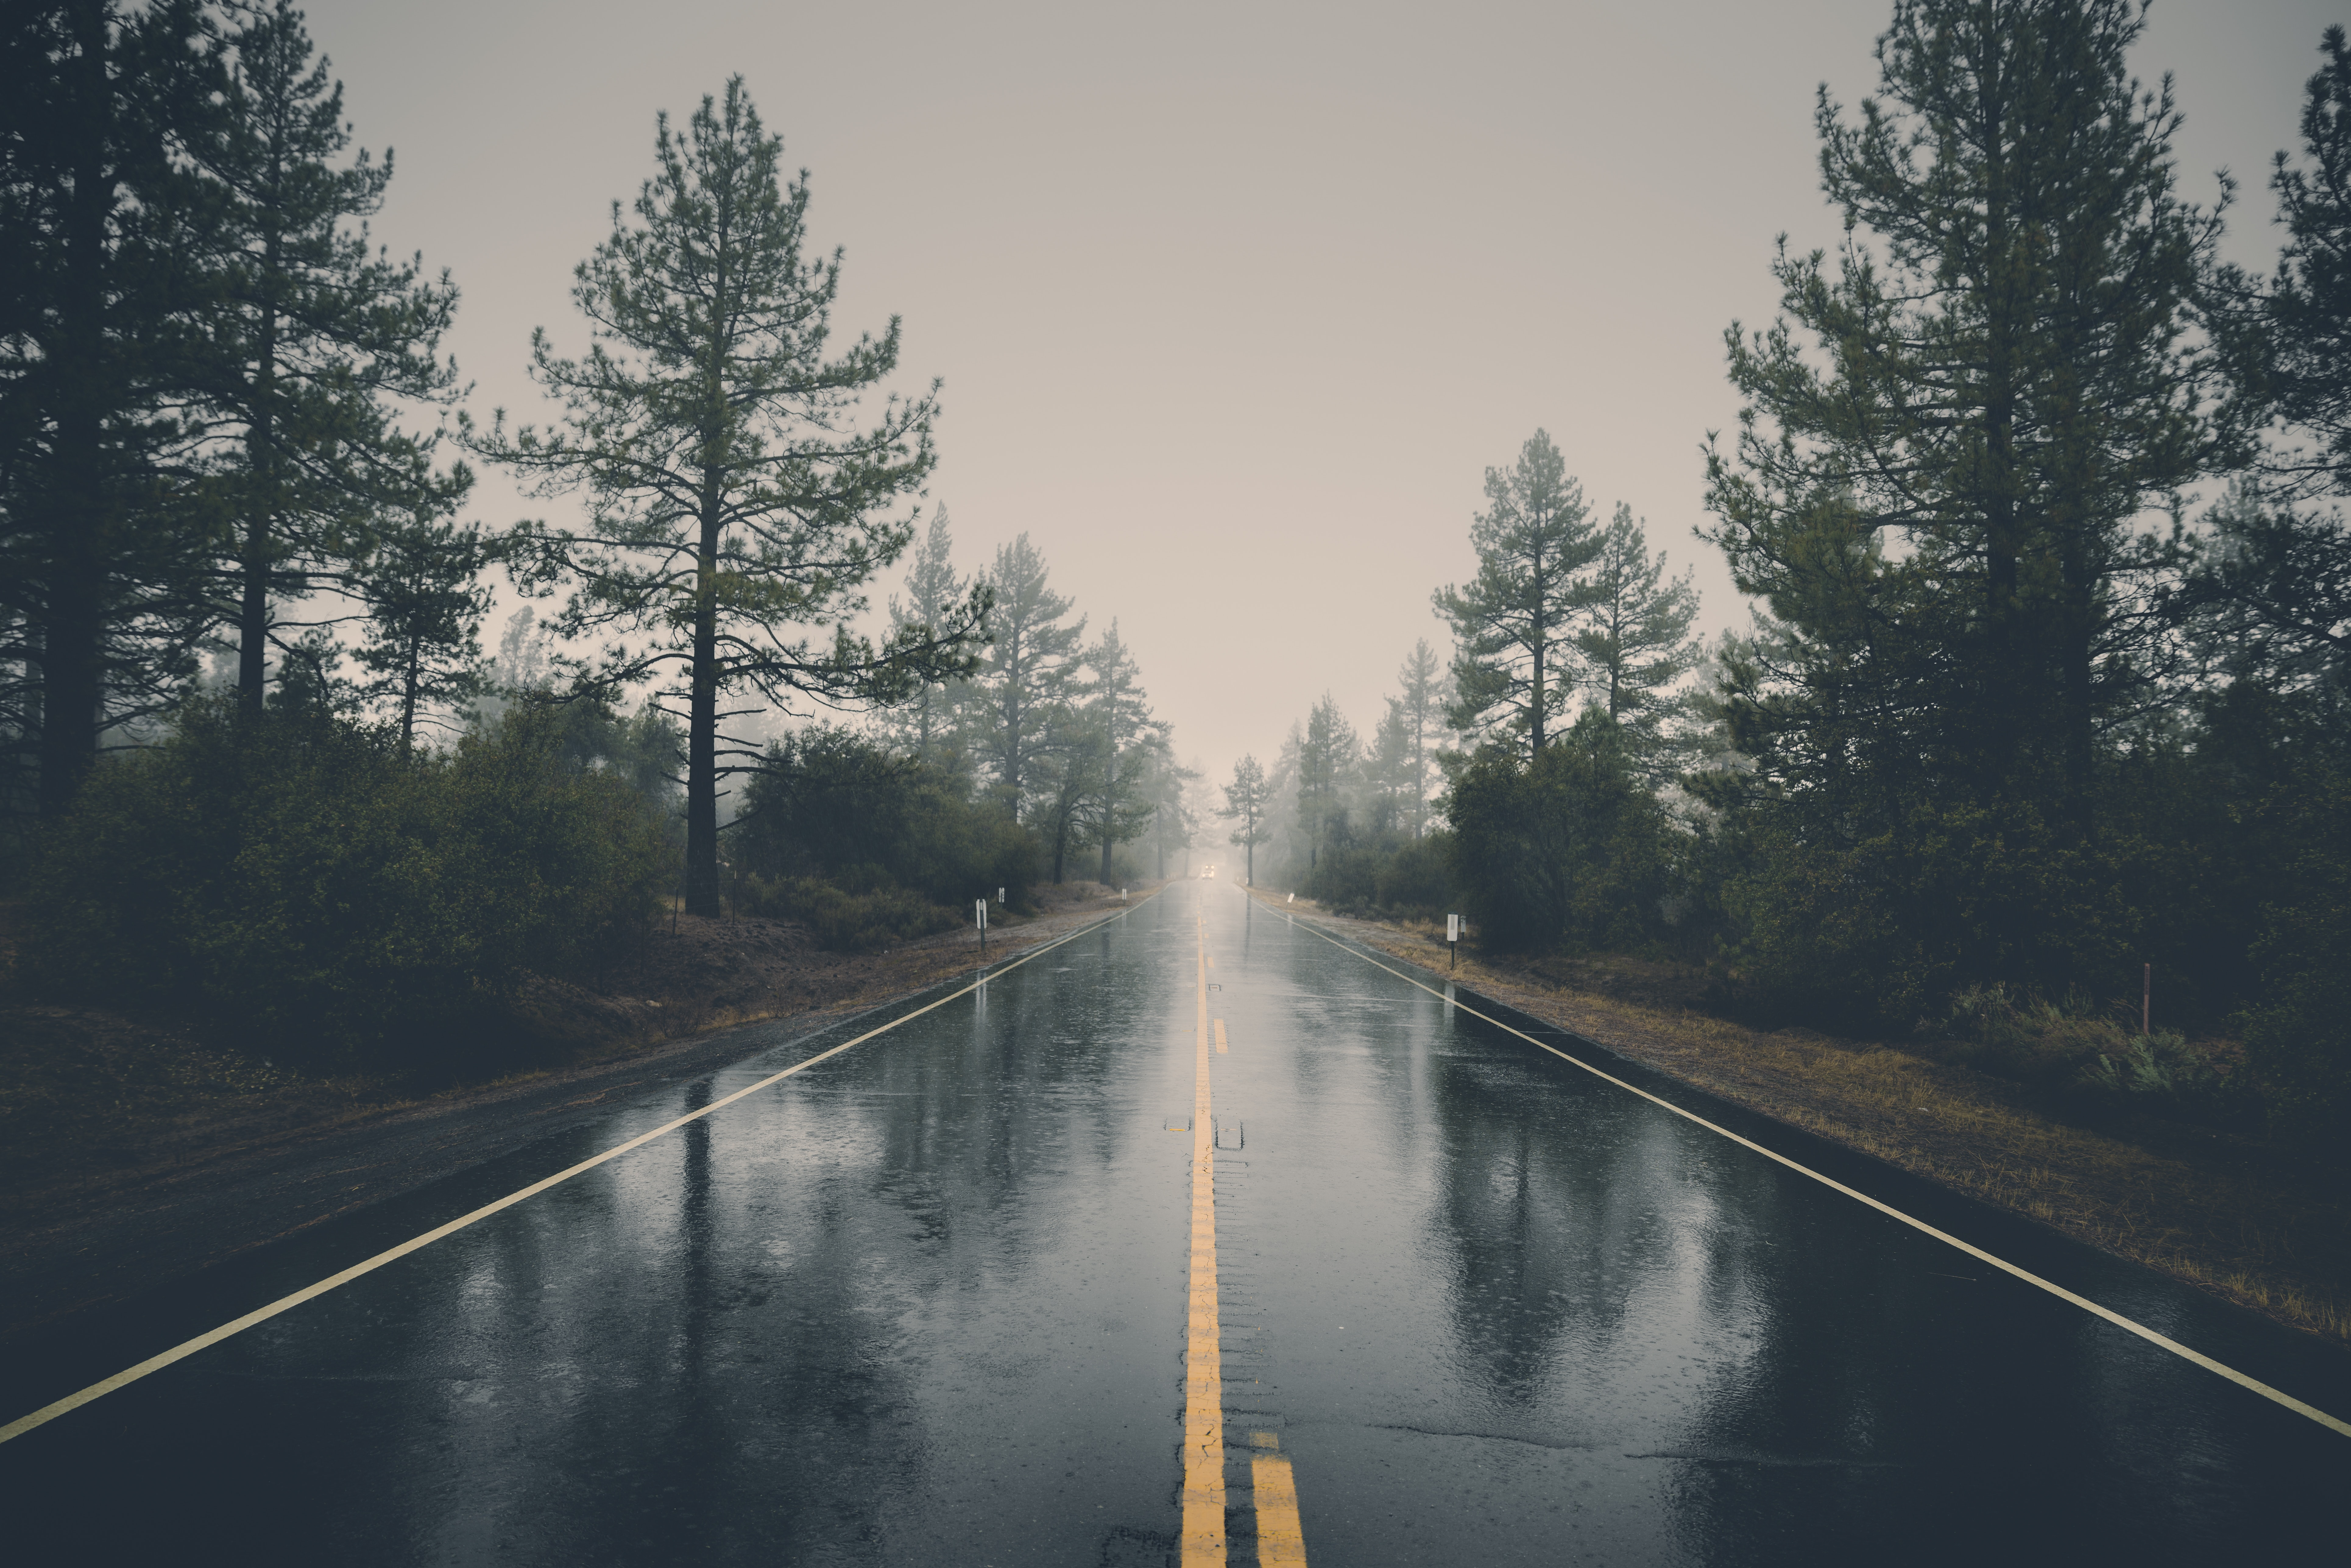 Beautiful Free Stock Photo Of Road, Landscape, Nature, Forest